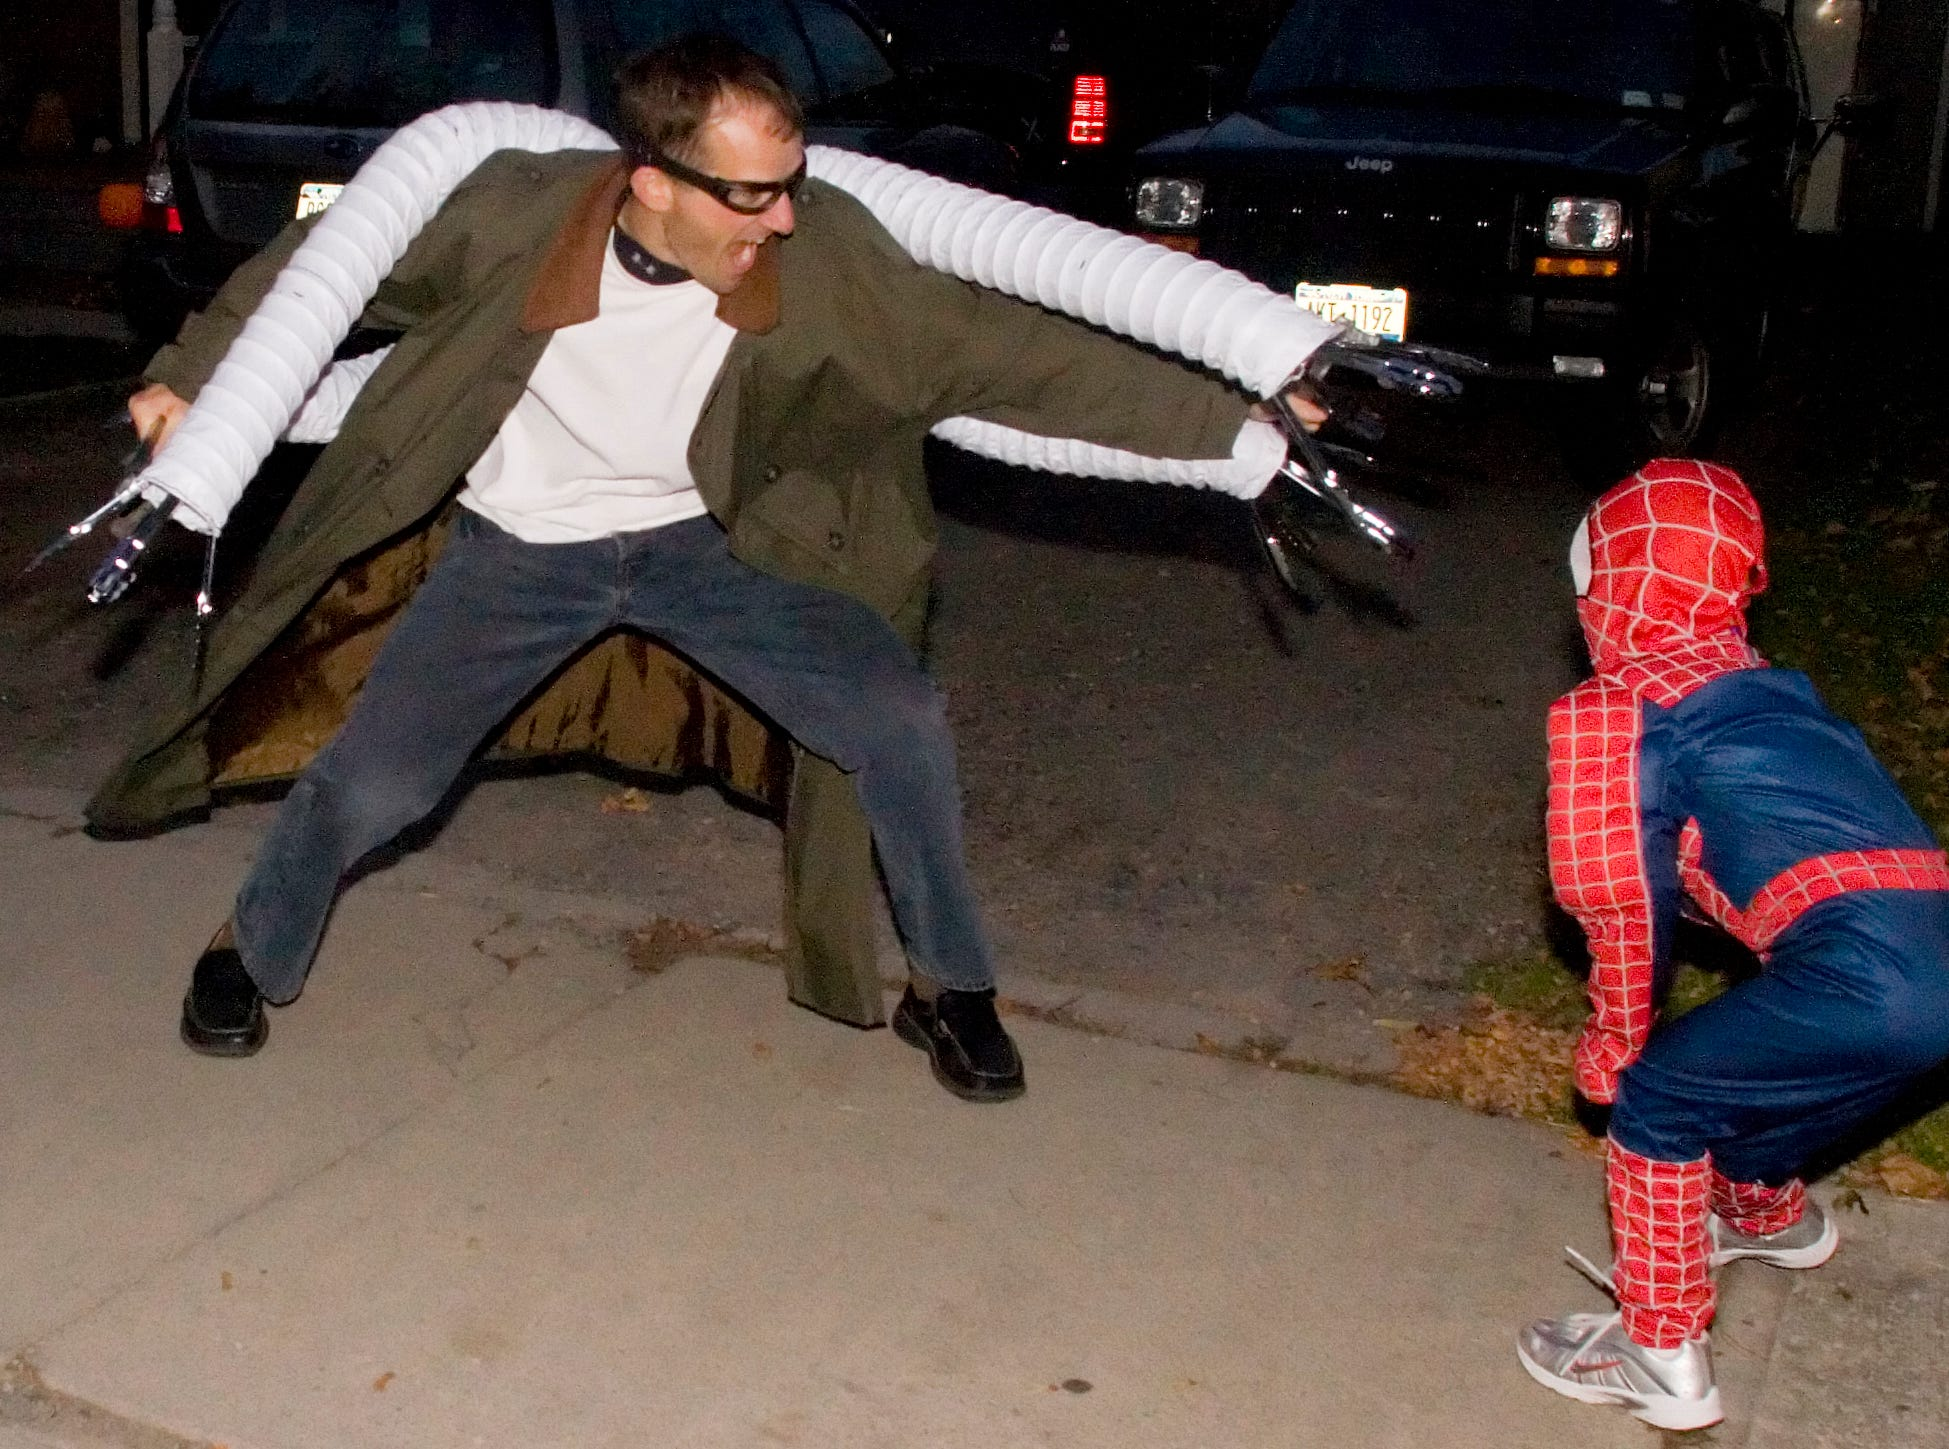 2007: Trevor Holland, 35, of Hector, dressed as Doctor Octopus, left, plays with his son, Elliott, 6, dressed as Spider-Man, on Perry Street in Watkins Glen.